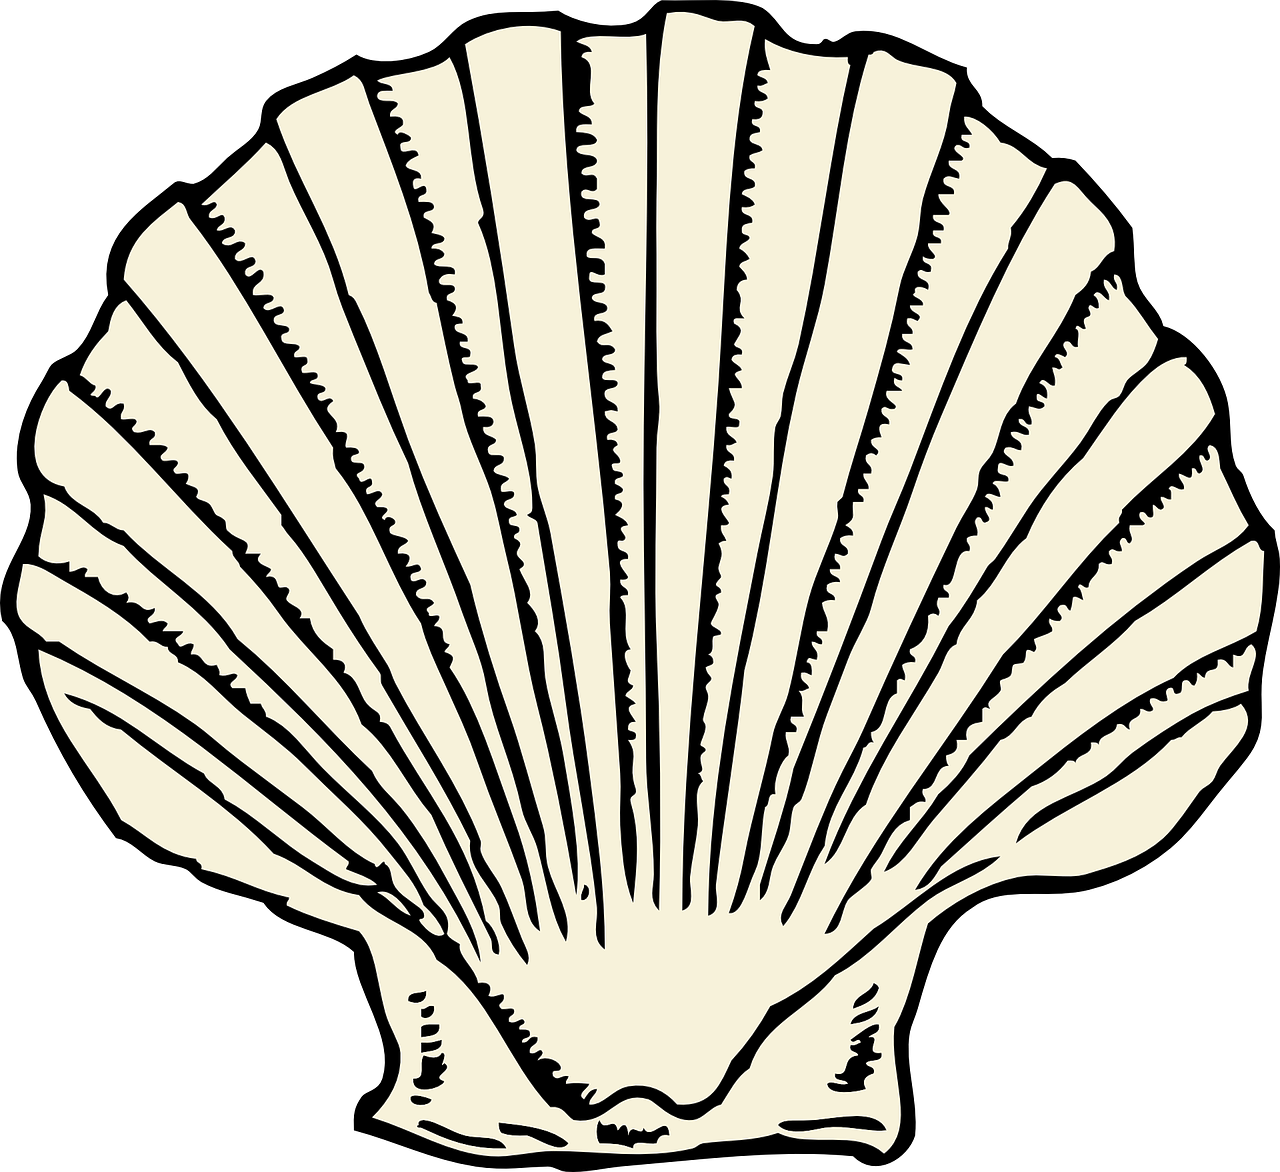 scallop clam shell free photo